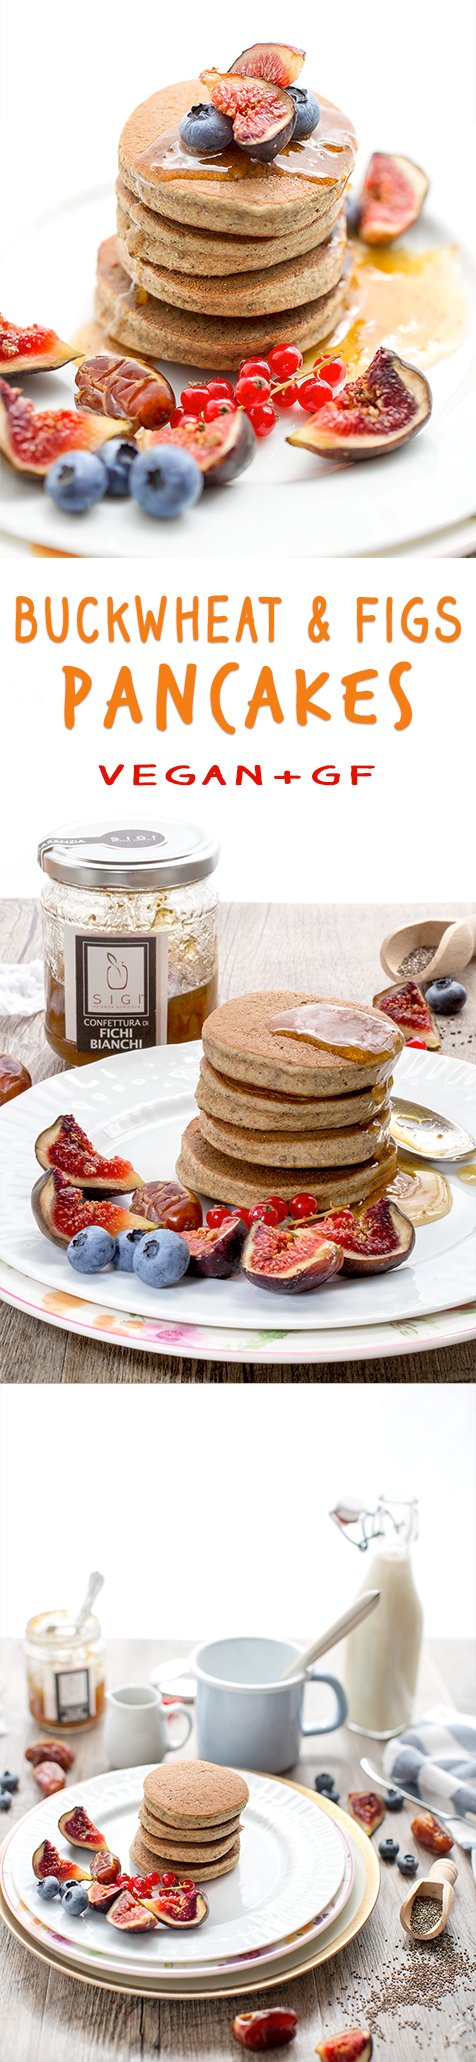 #vegan-#glutenfree-buckwheat-pancakes-with-figs-and-blueberries-_-pancakes-al-grano-saraceno-e-fichi-con-marmellata-di-fichi-vegan-senza-glutine-